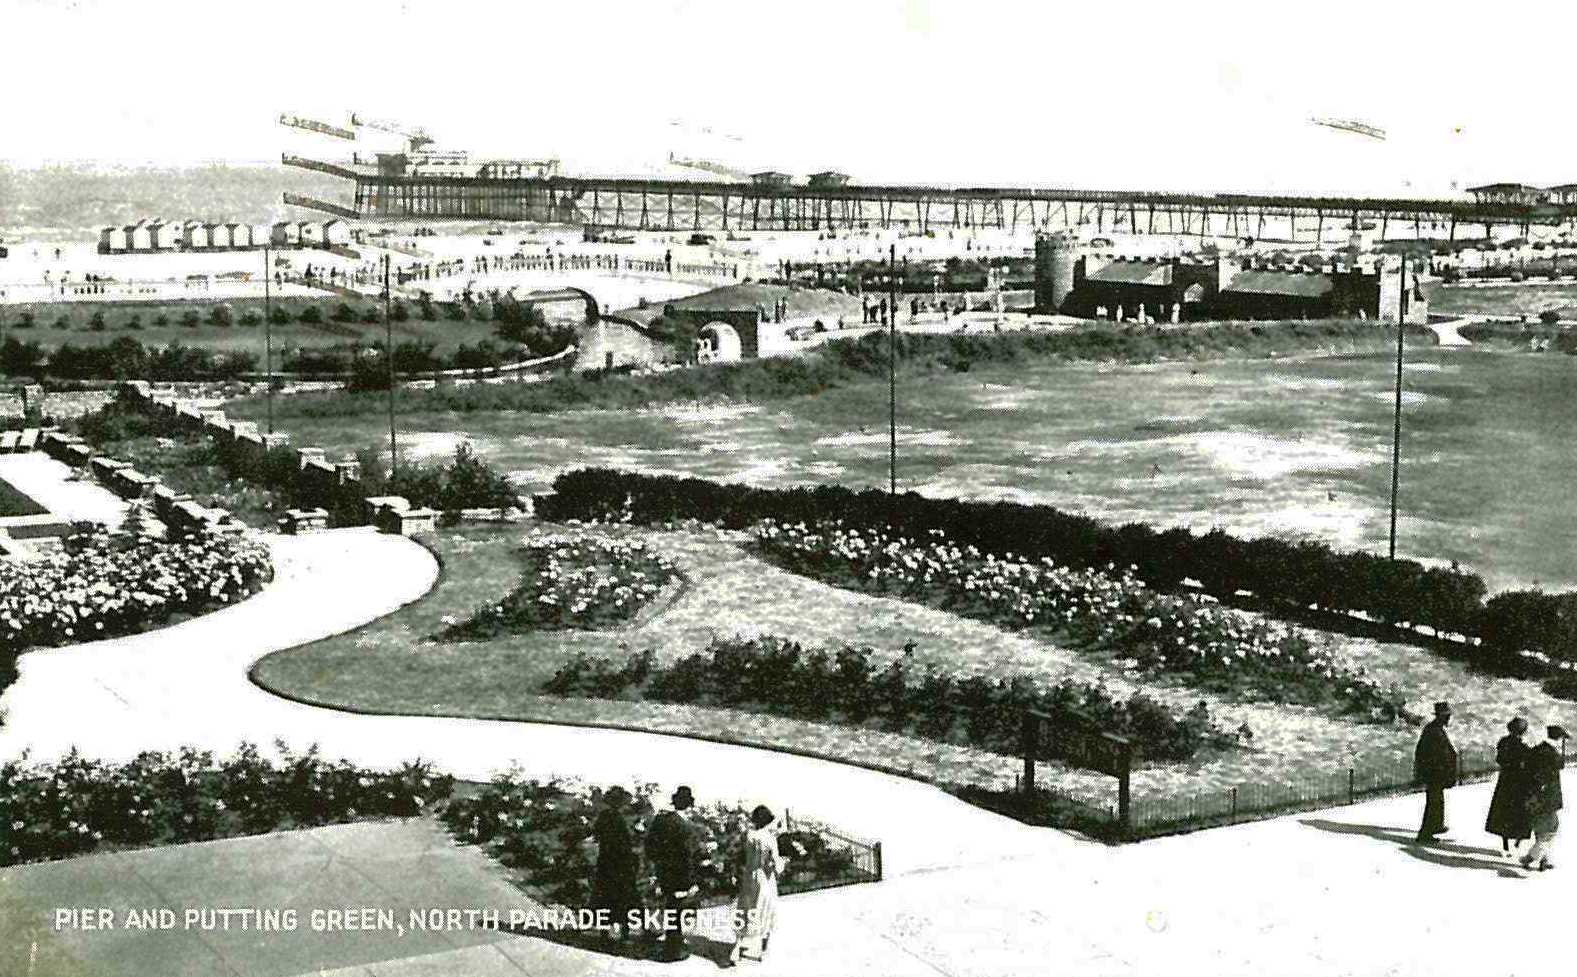 Black and white postcard of the putting green at Skegness, with the pier in the background, c.1938 (Ref: MS 192/117)